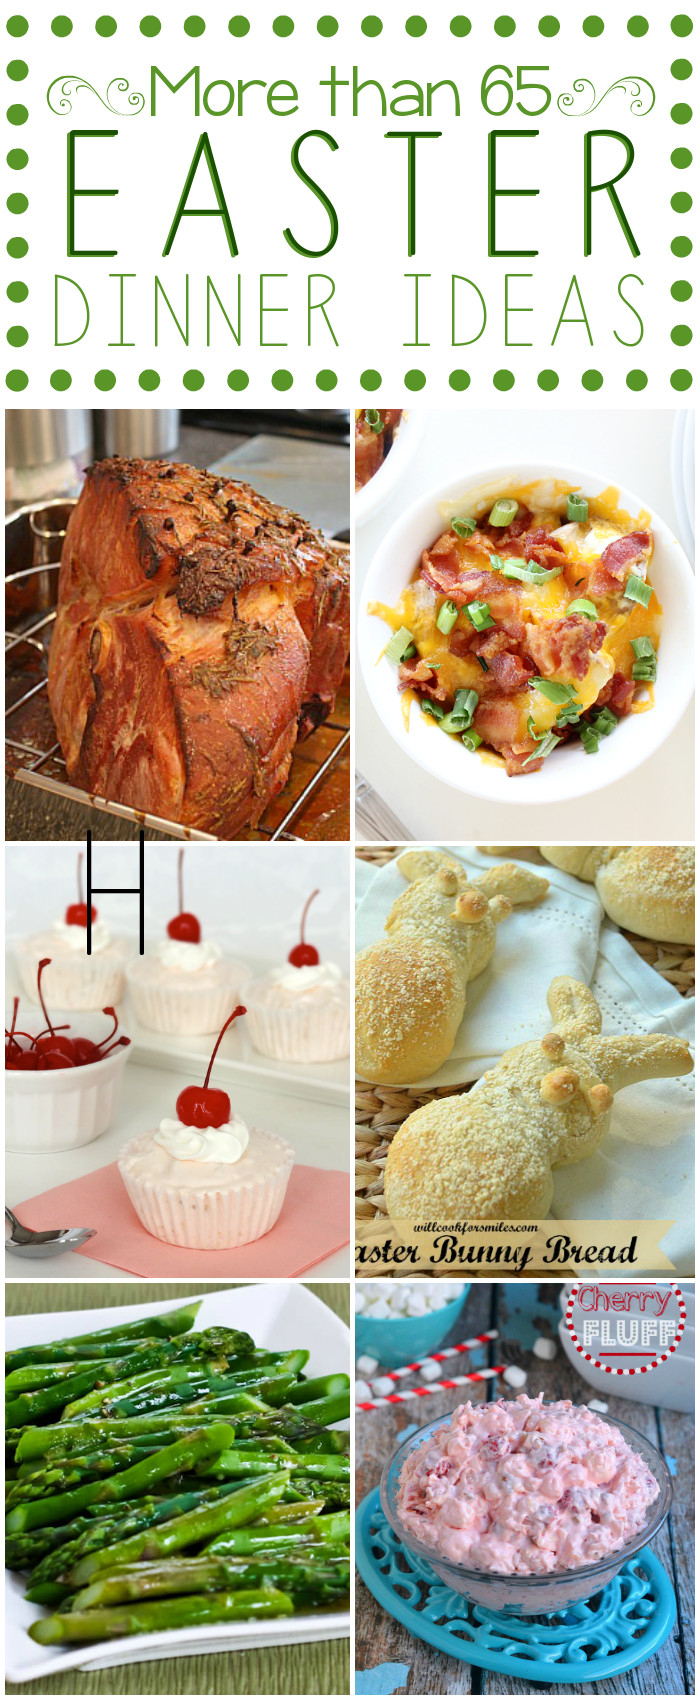 Easter Dinner Recipes Ideas  Easter Dinner Ideas Round Up Mom s Test Kitchen